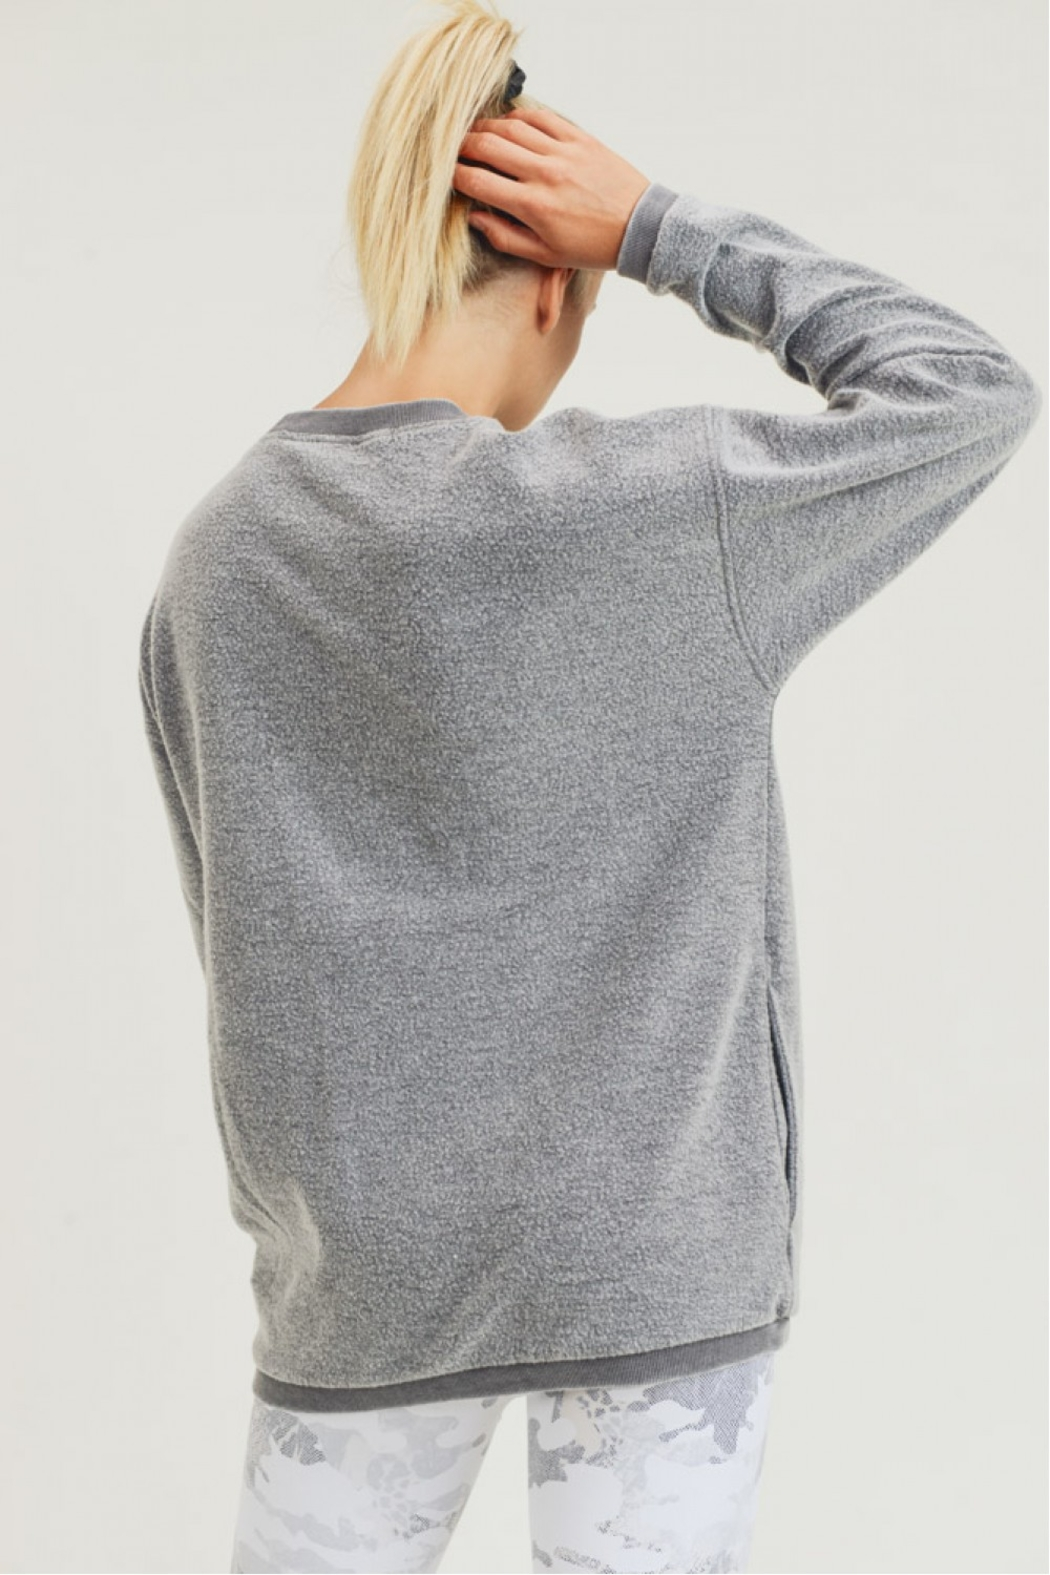 Mono B Fuzzy Mineral Washed Pullover w Pockets - Side Cropped Image